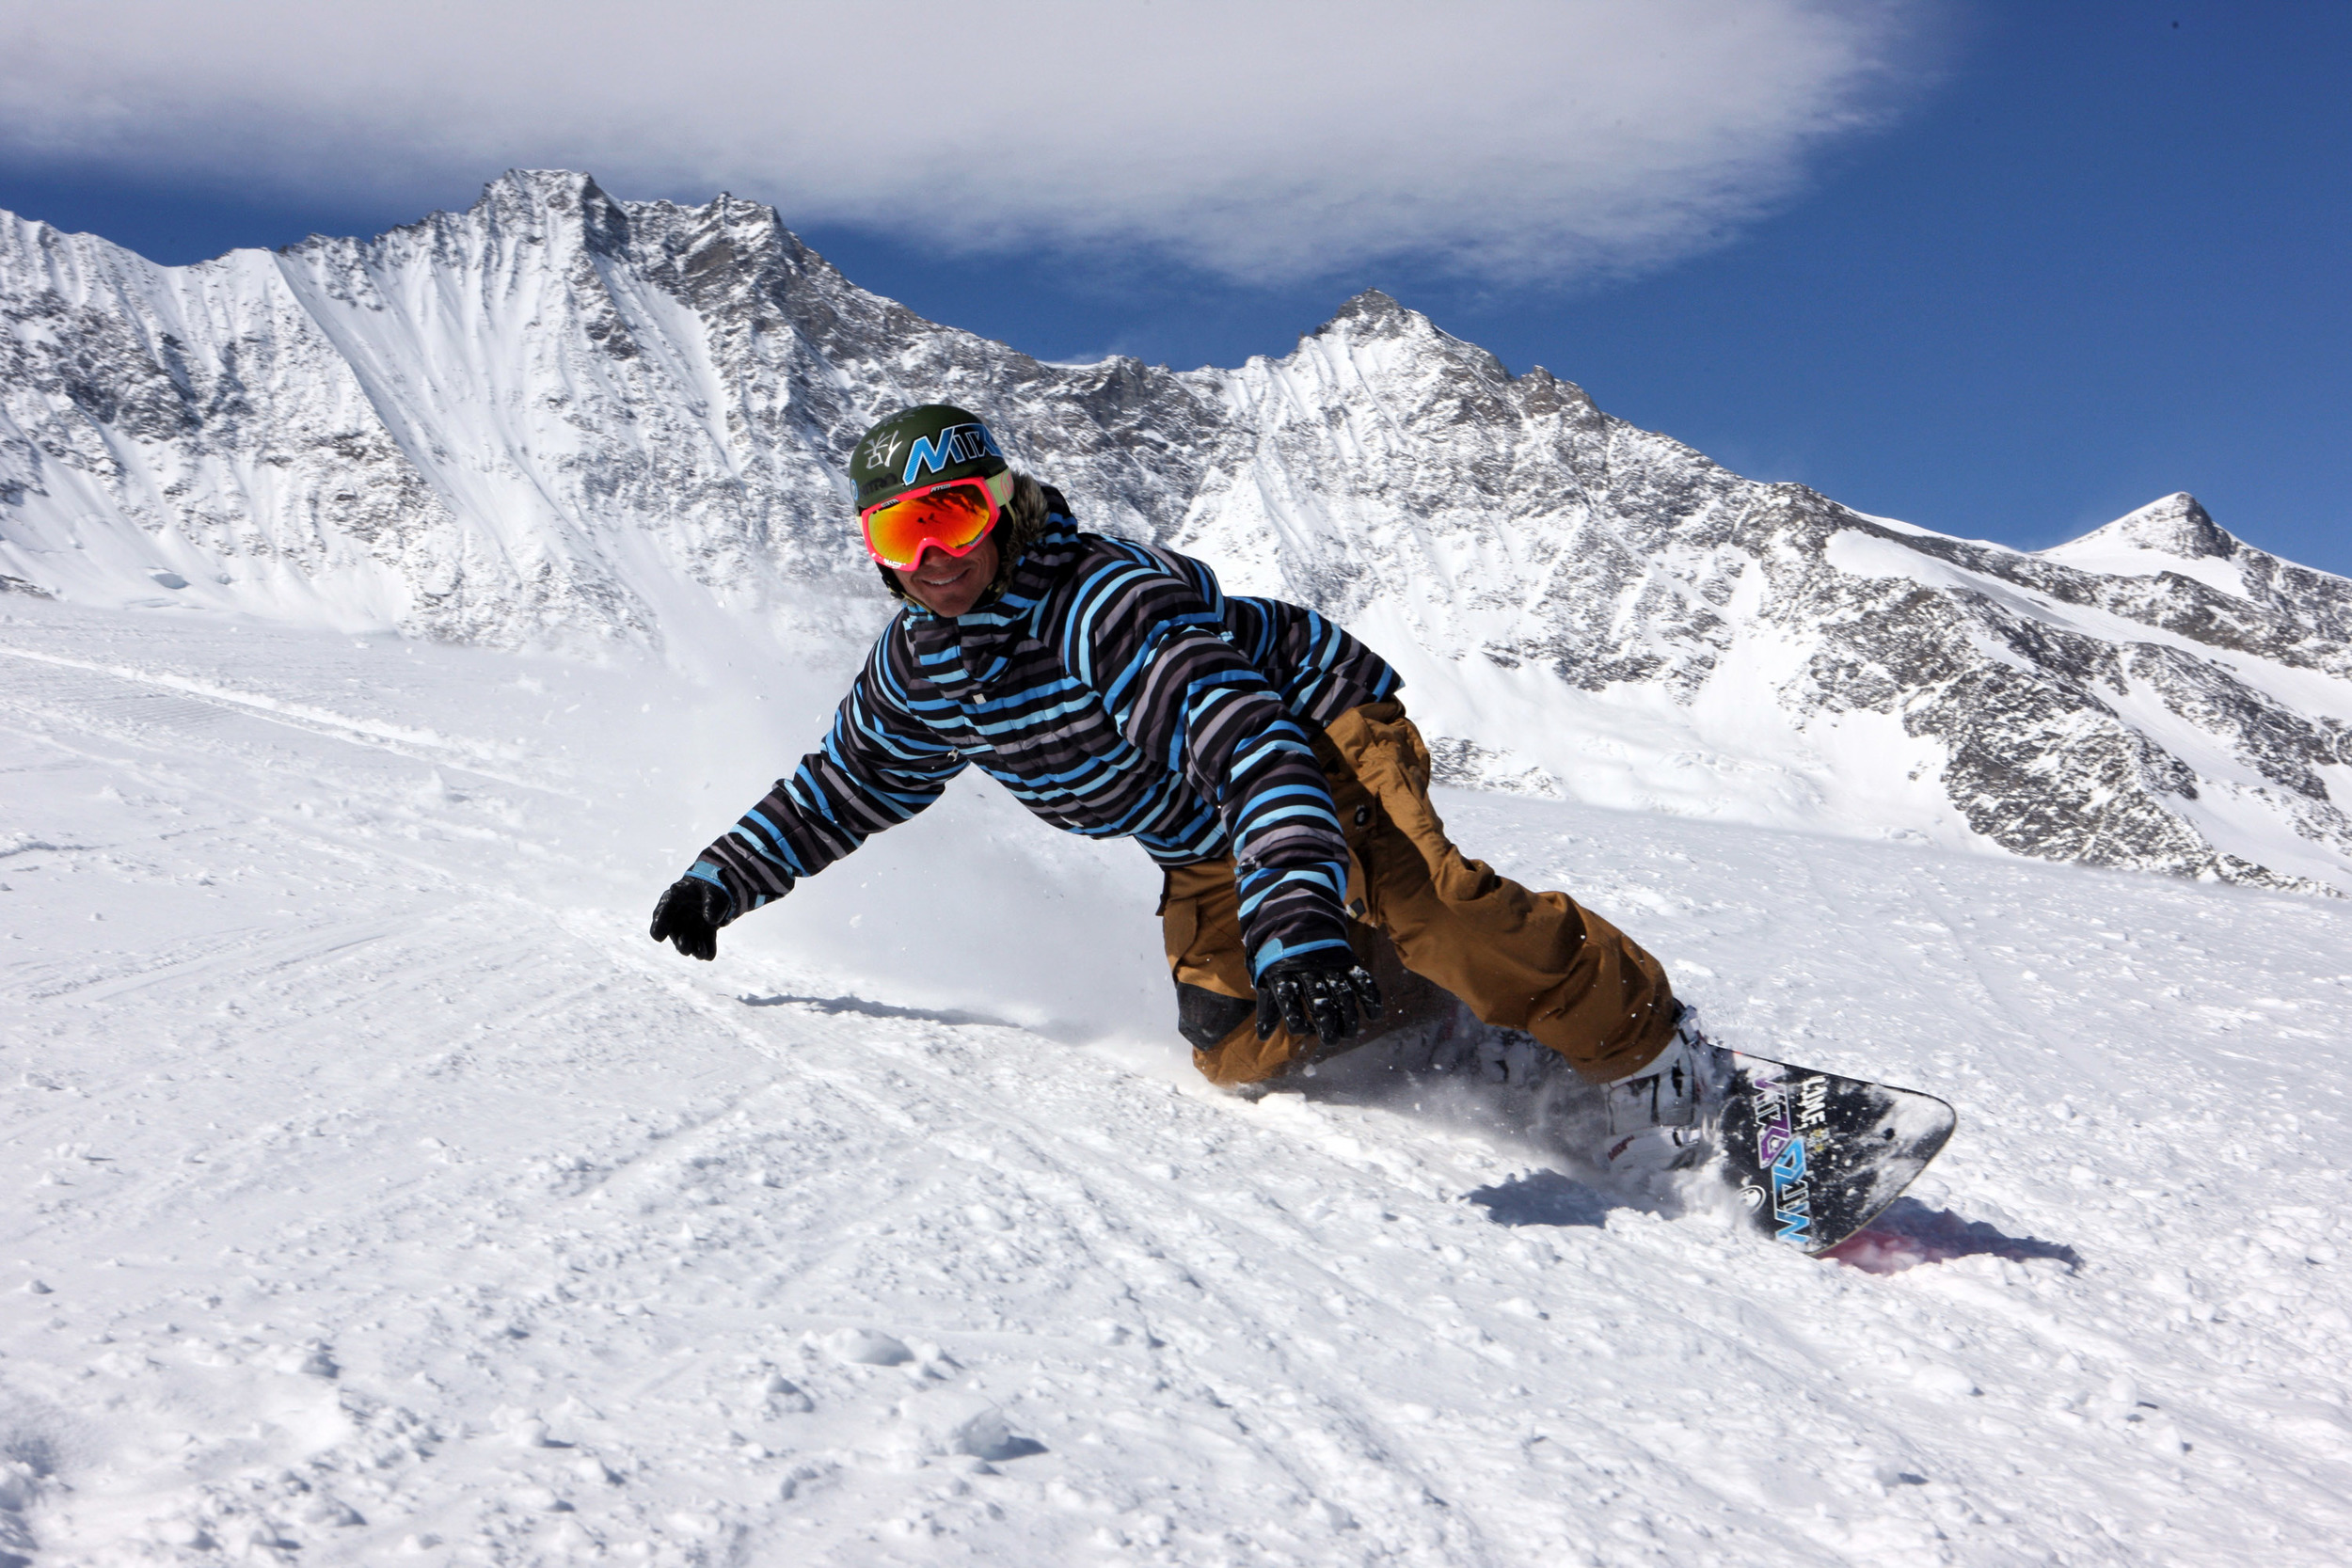 517_1arizona_snowbowl_2208.jpg